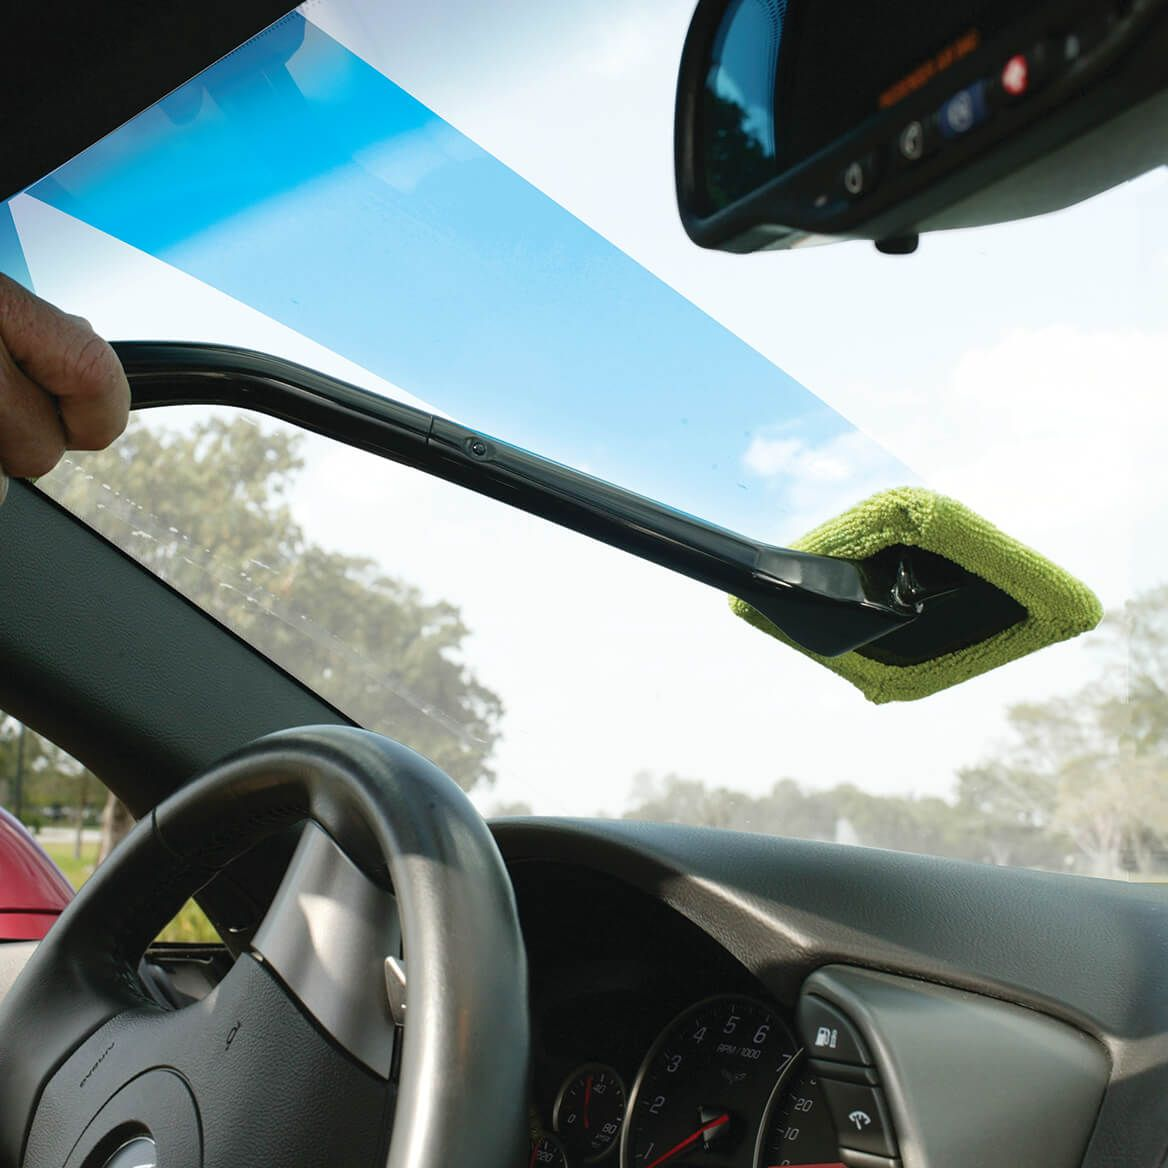 Windshield Cleaning Wand-372321